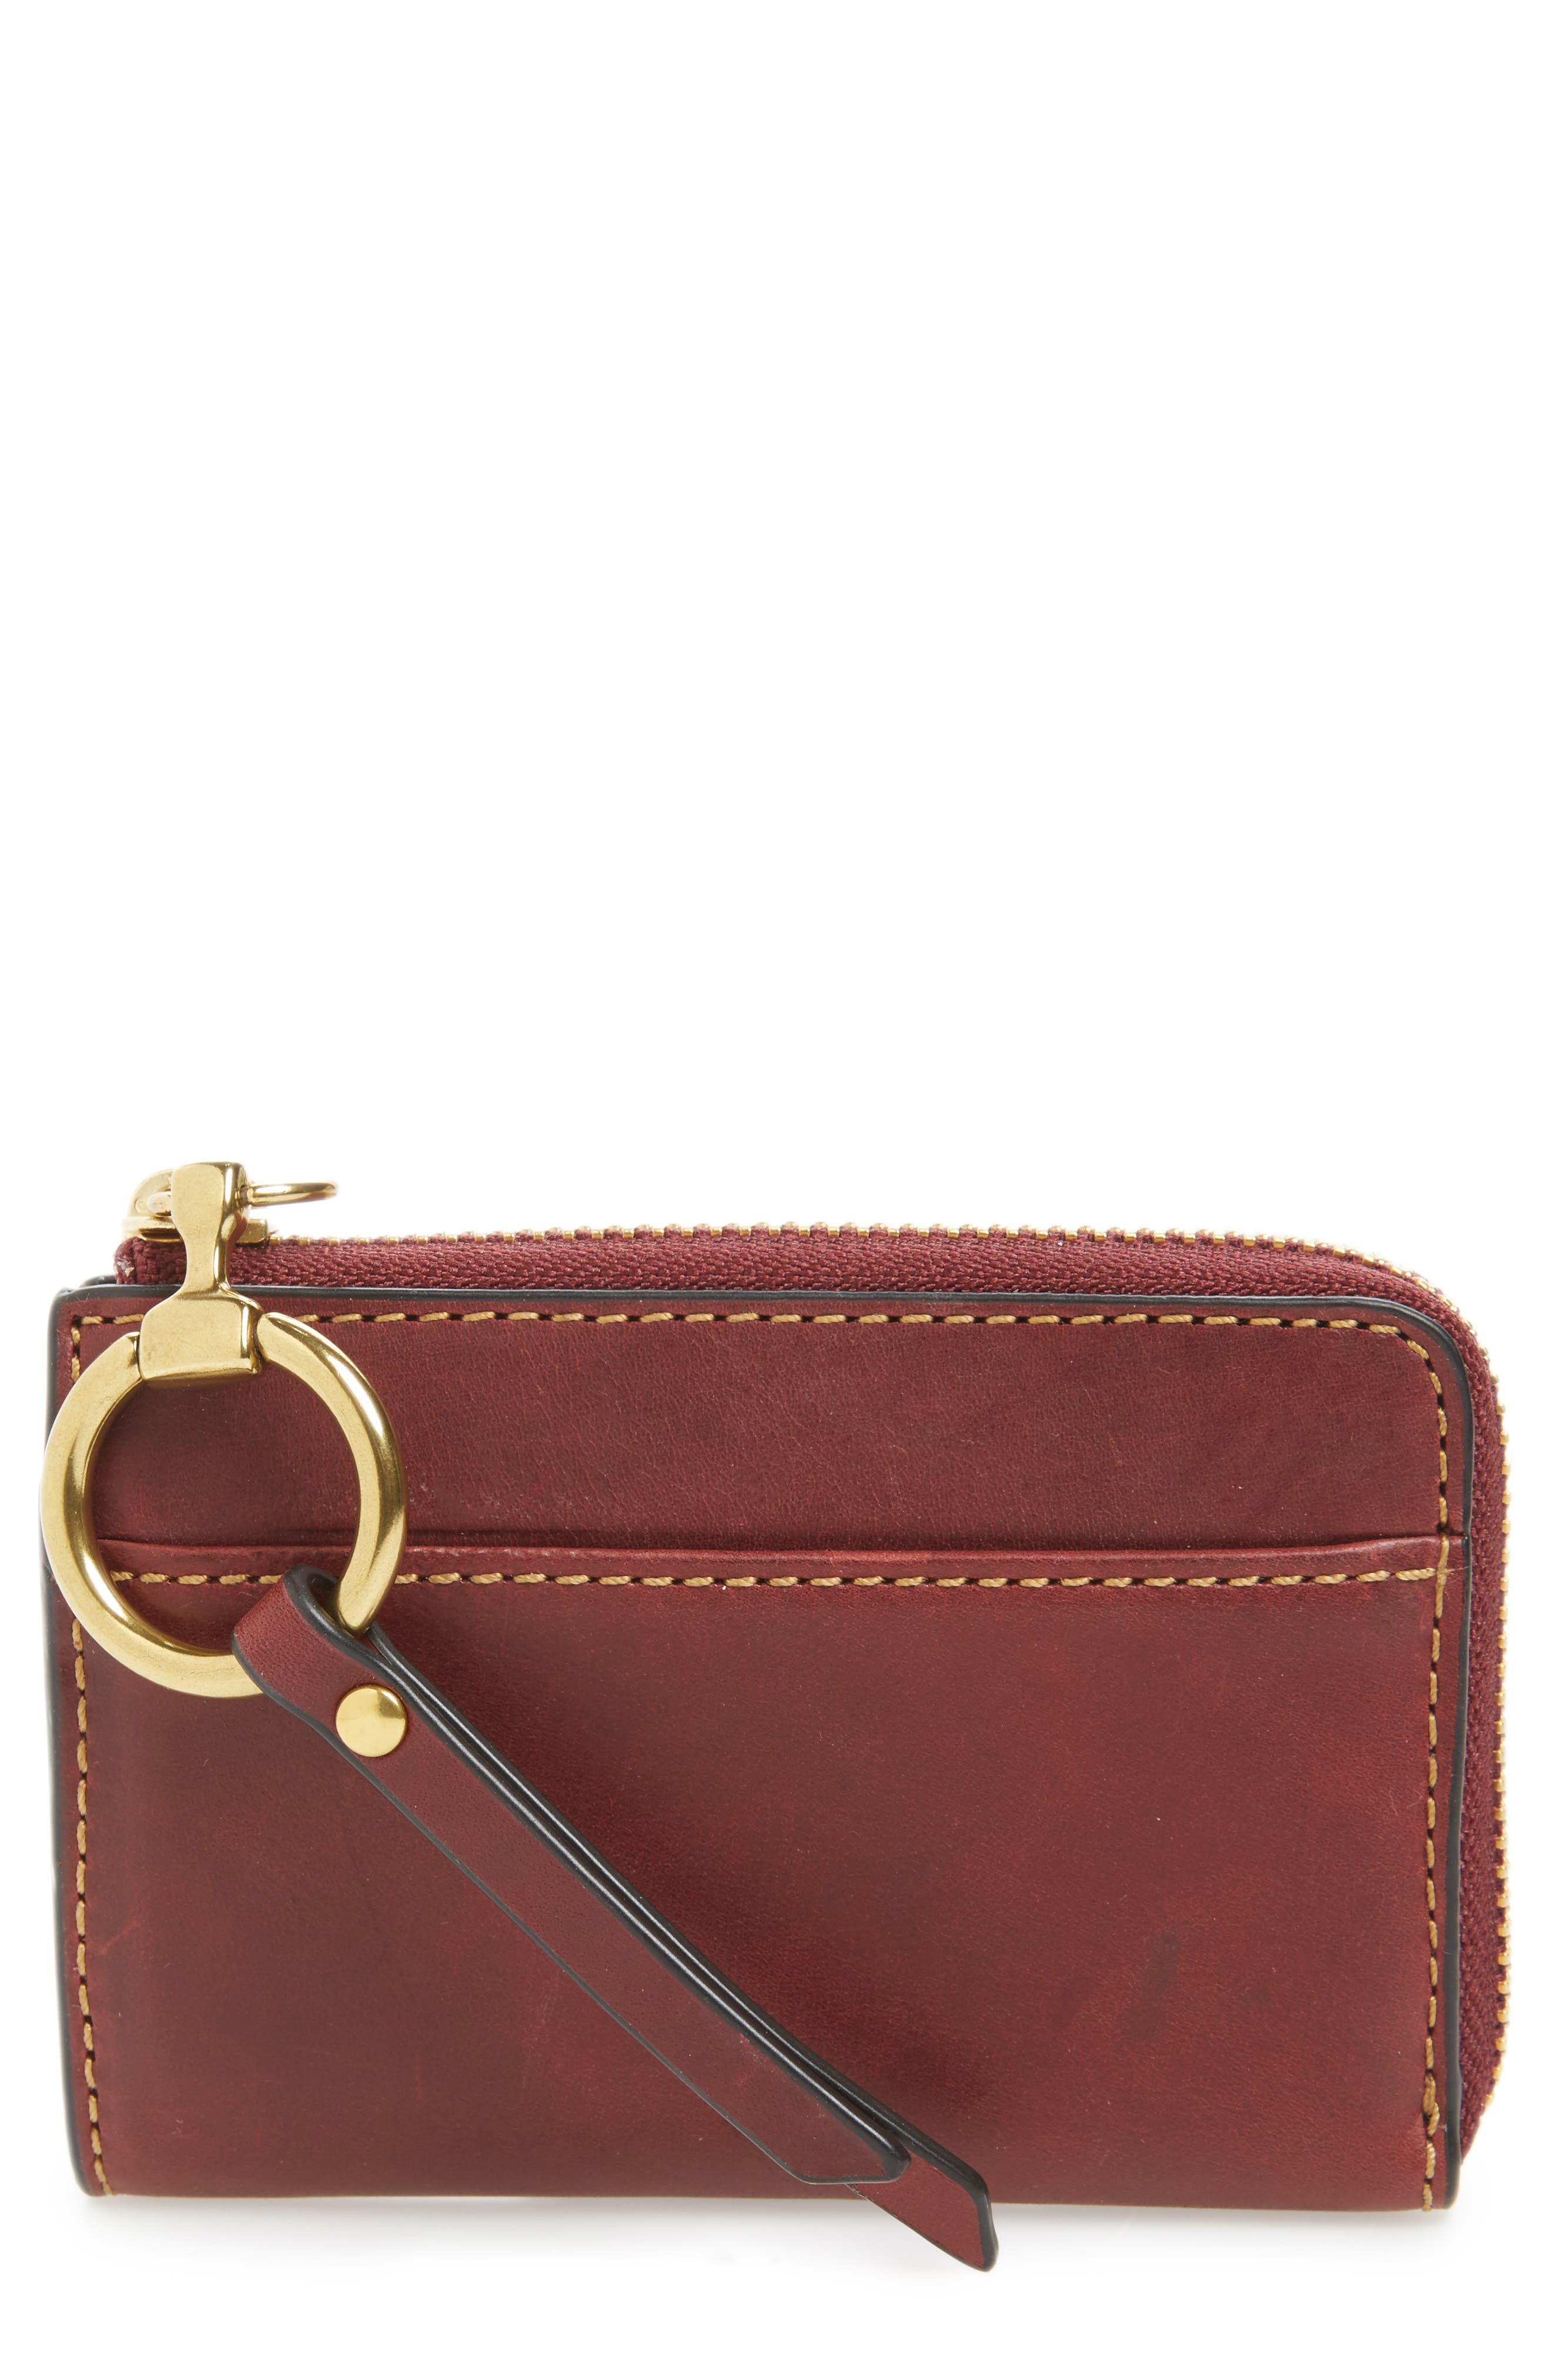 Frye Small Ilana Harness Zip Leather Wallet